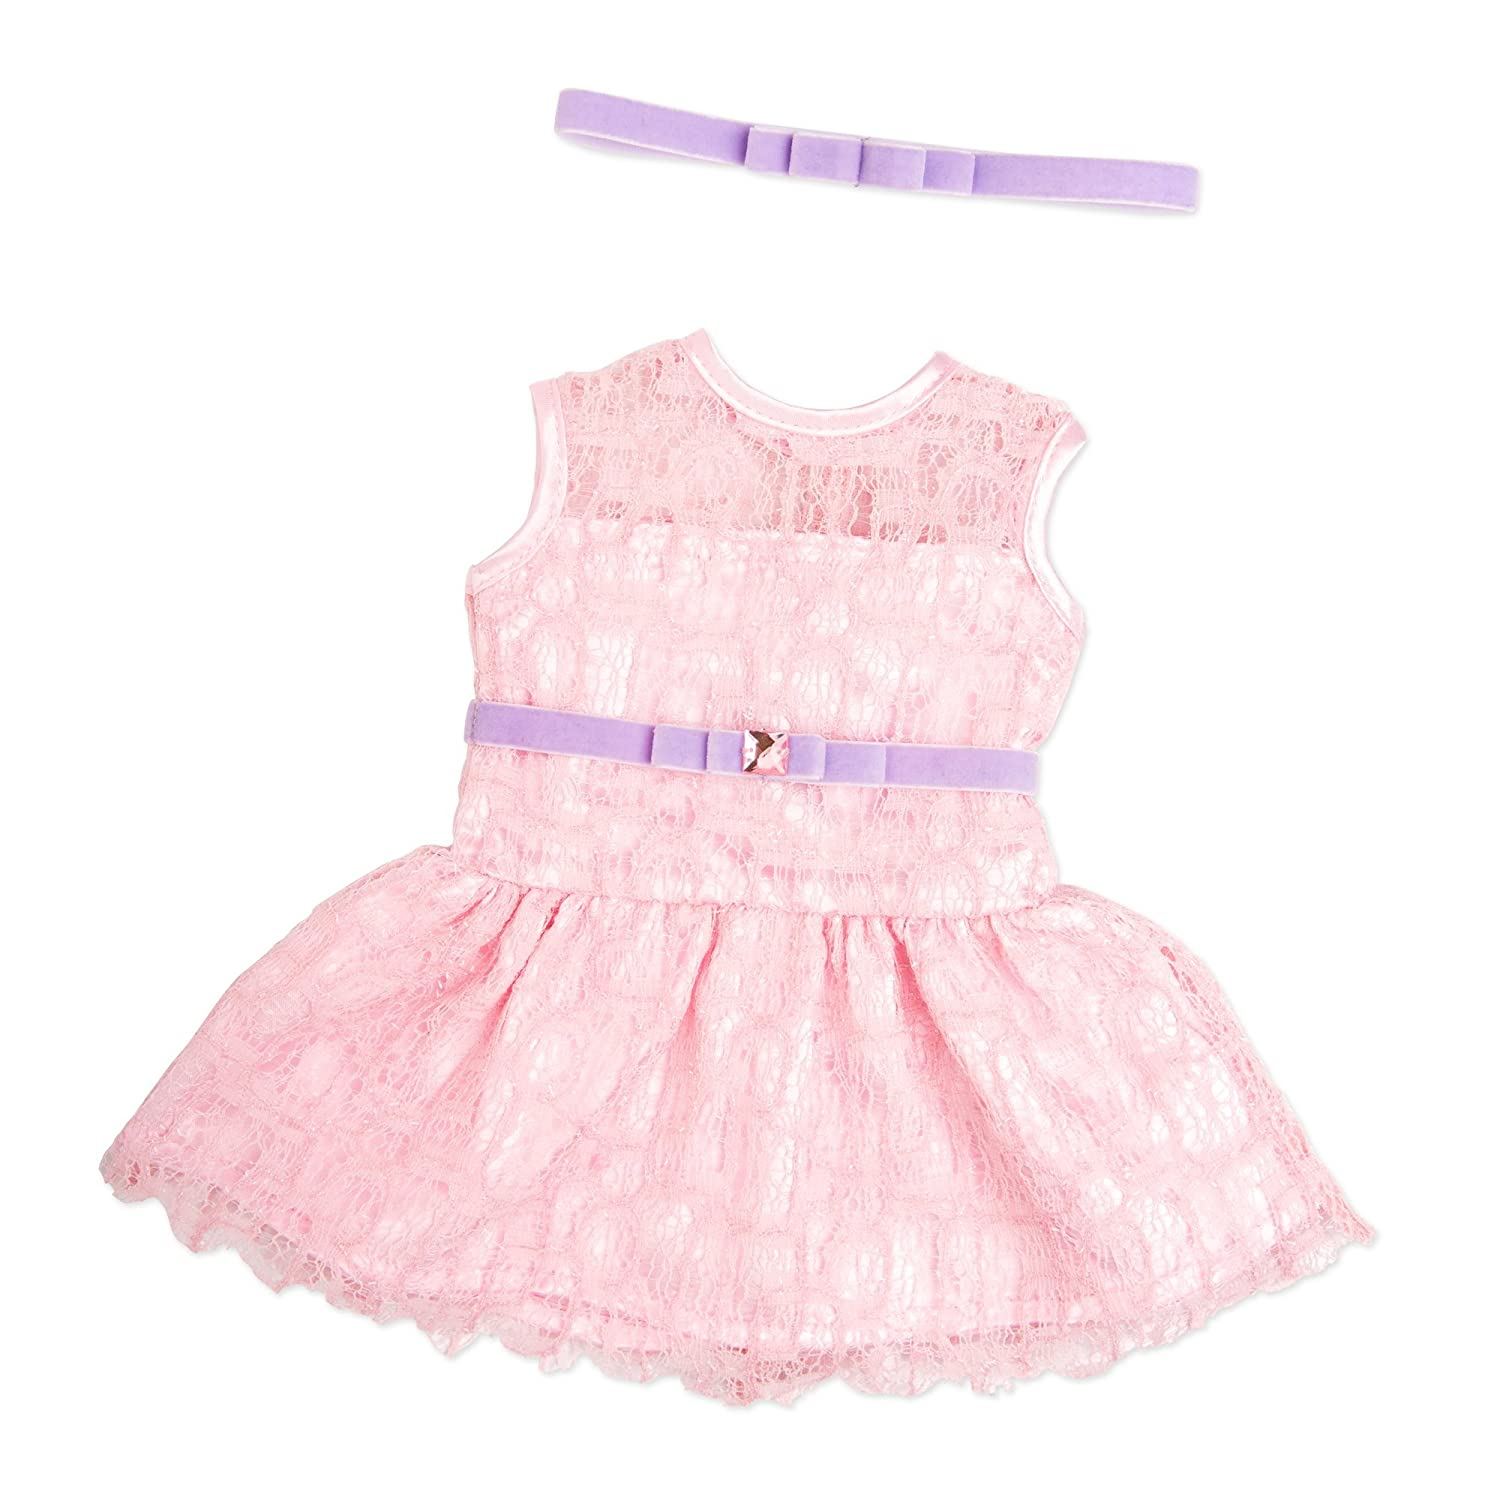 Maplelea/'s Graceful Lace Outfit for 18 Inch Doll